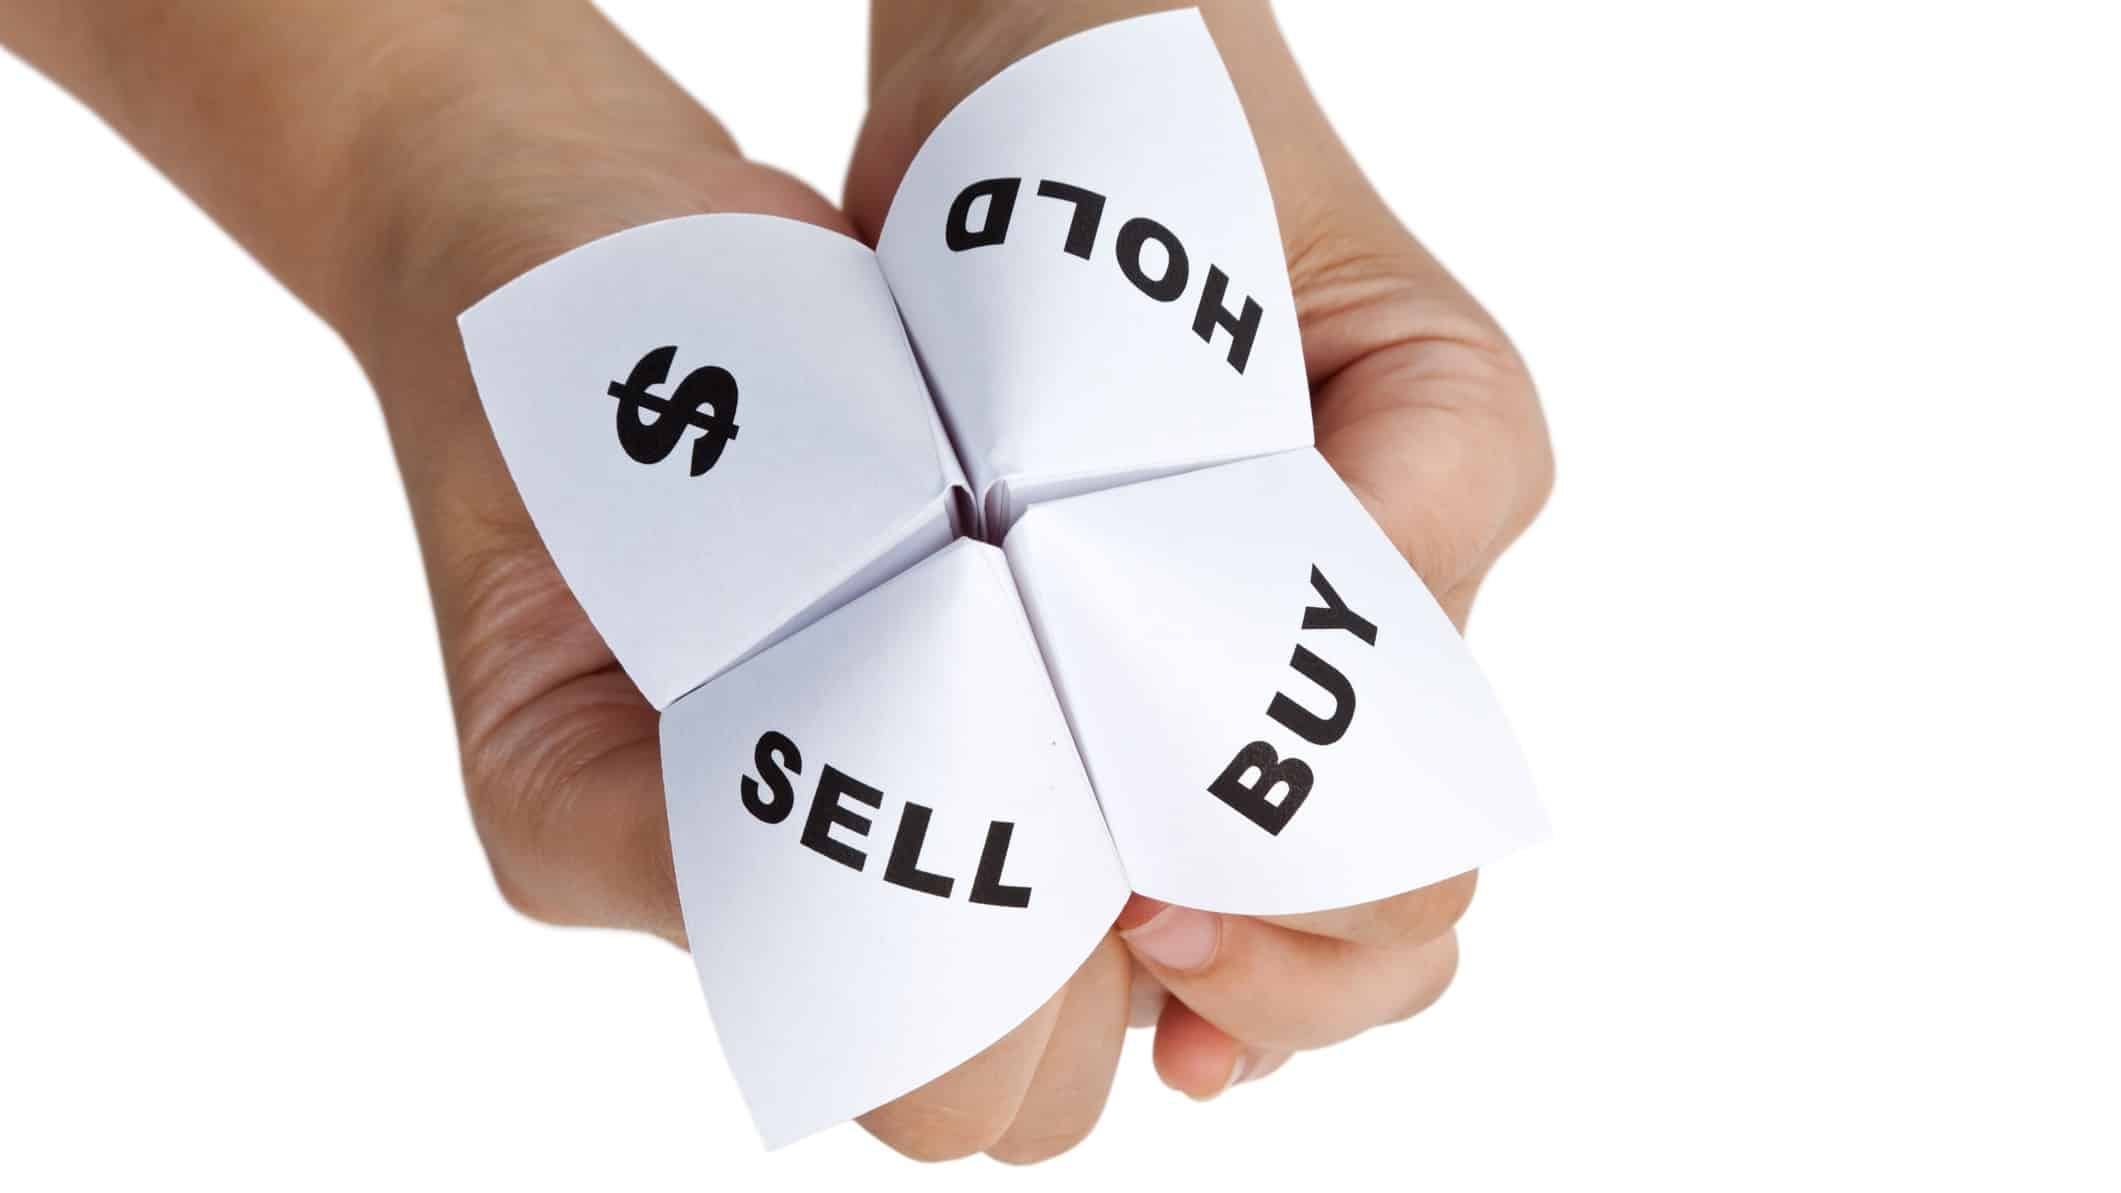 ASX shares broker downgrade origami paper fortune teller with buy hold sell and dollar sign options